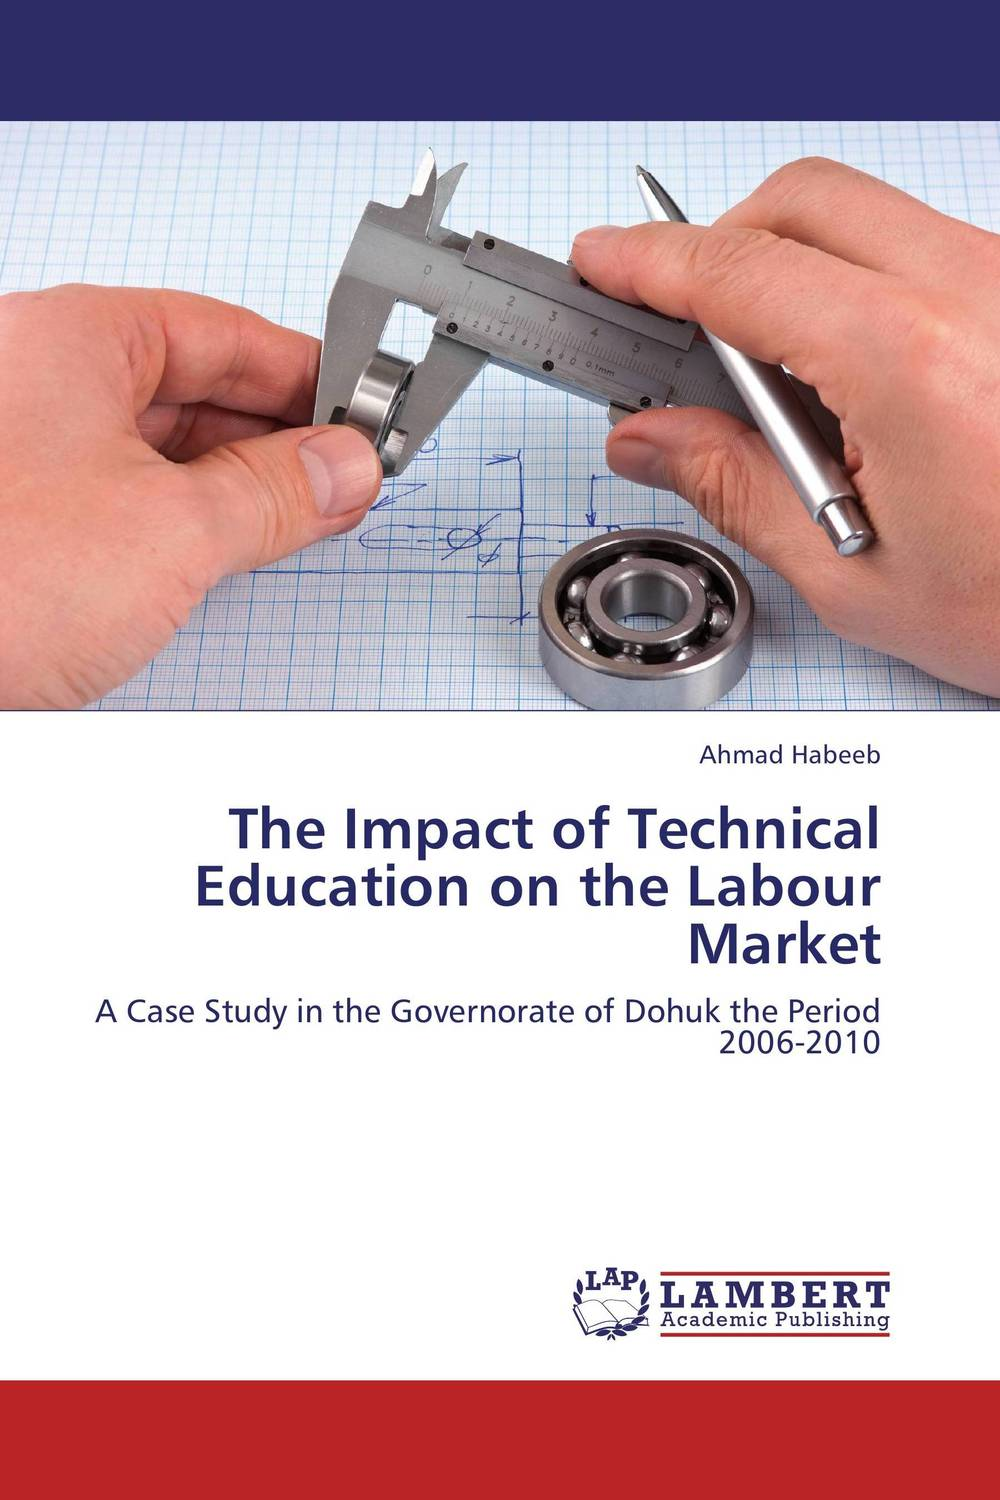 The Impact of Technical Education on the Labour Market the impact of technical education on the labour market